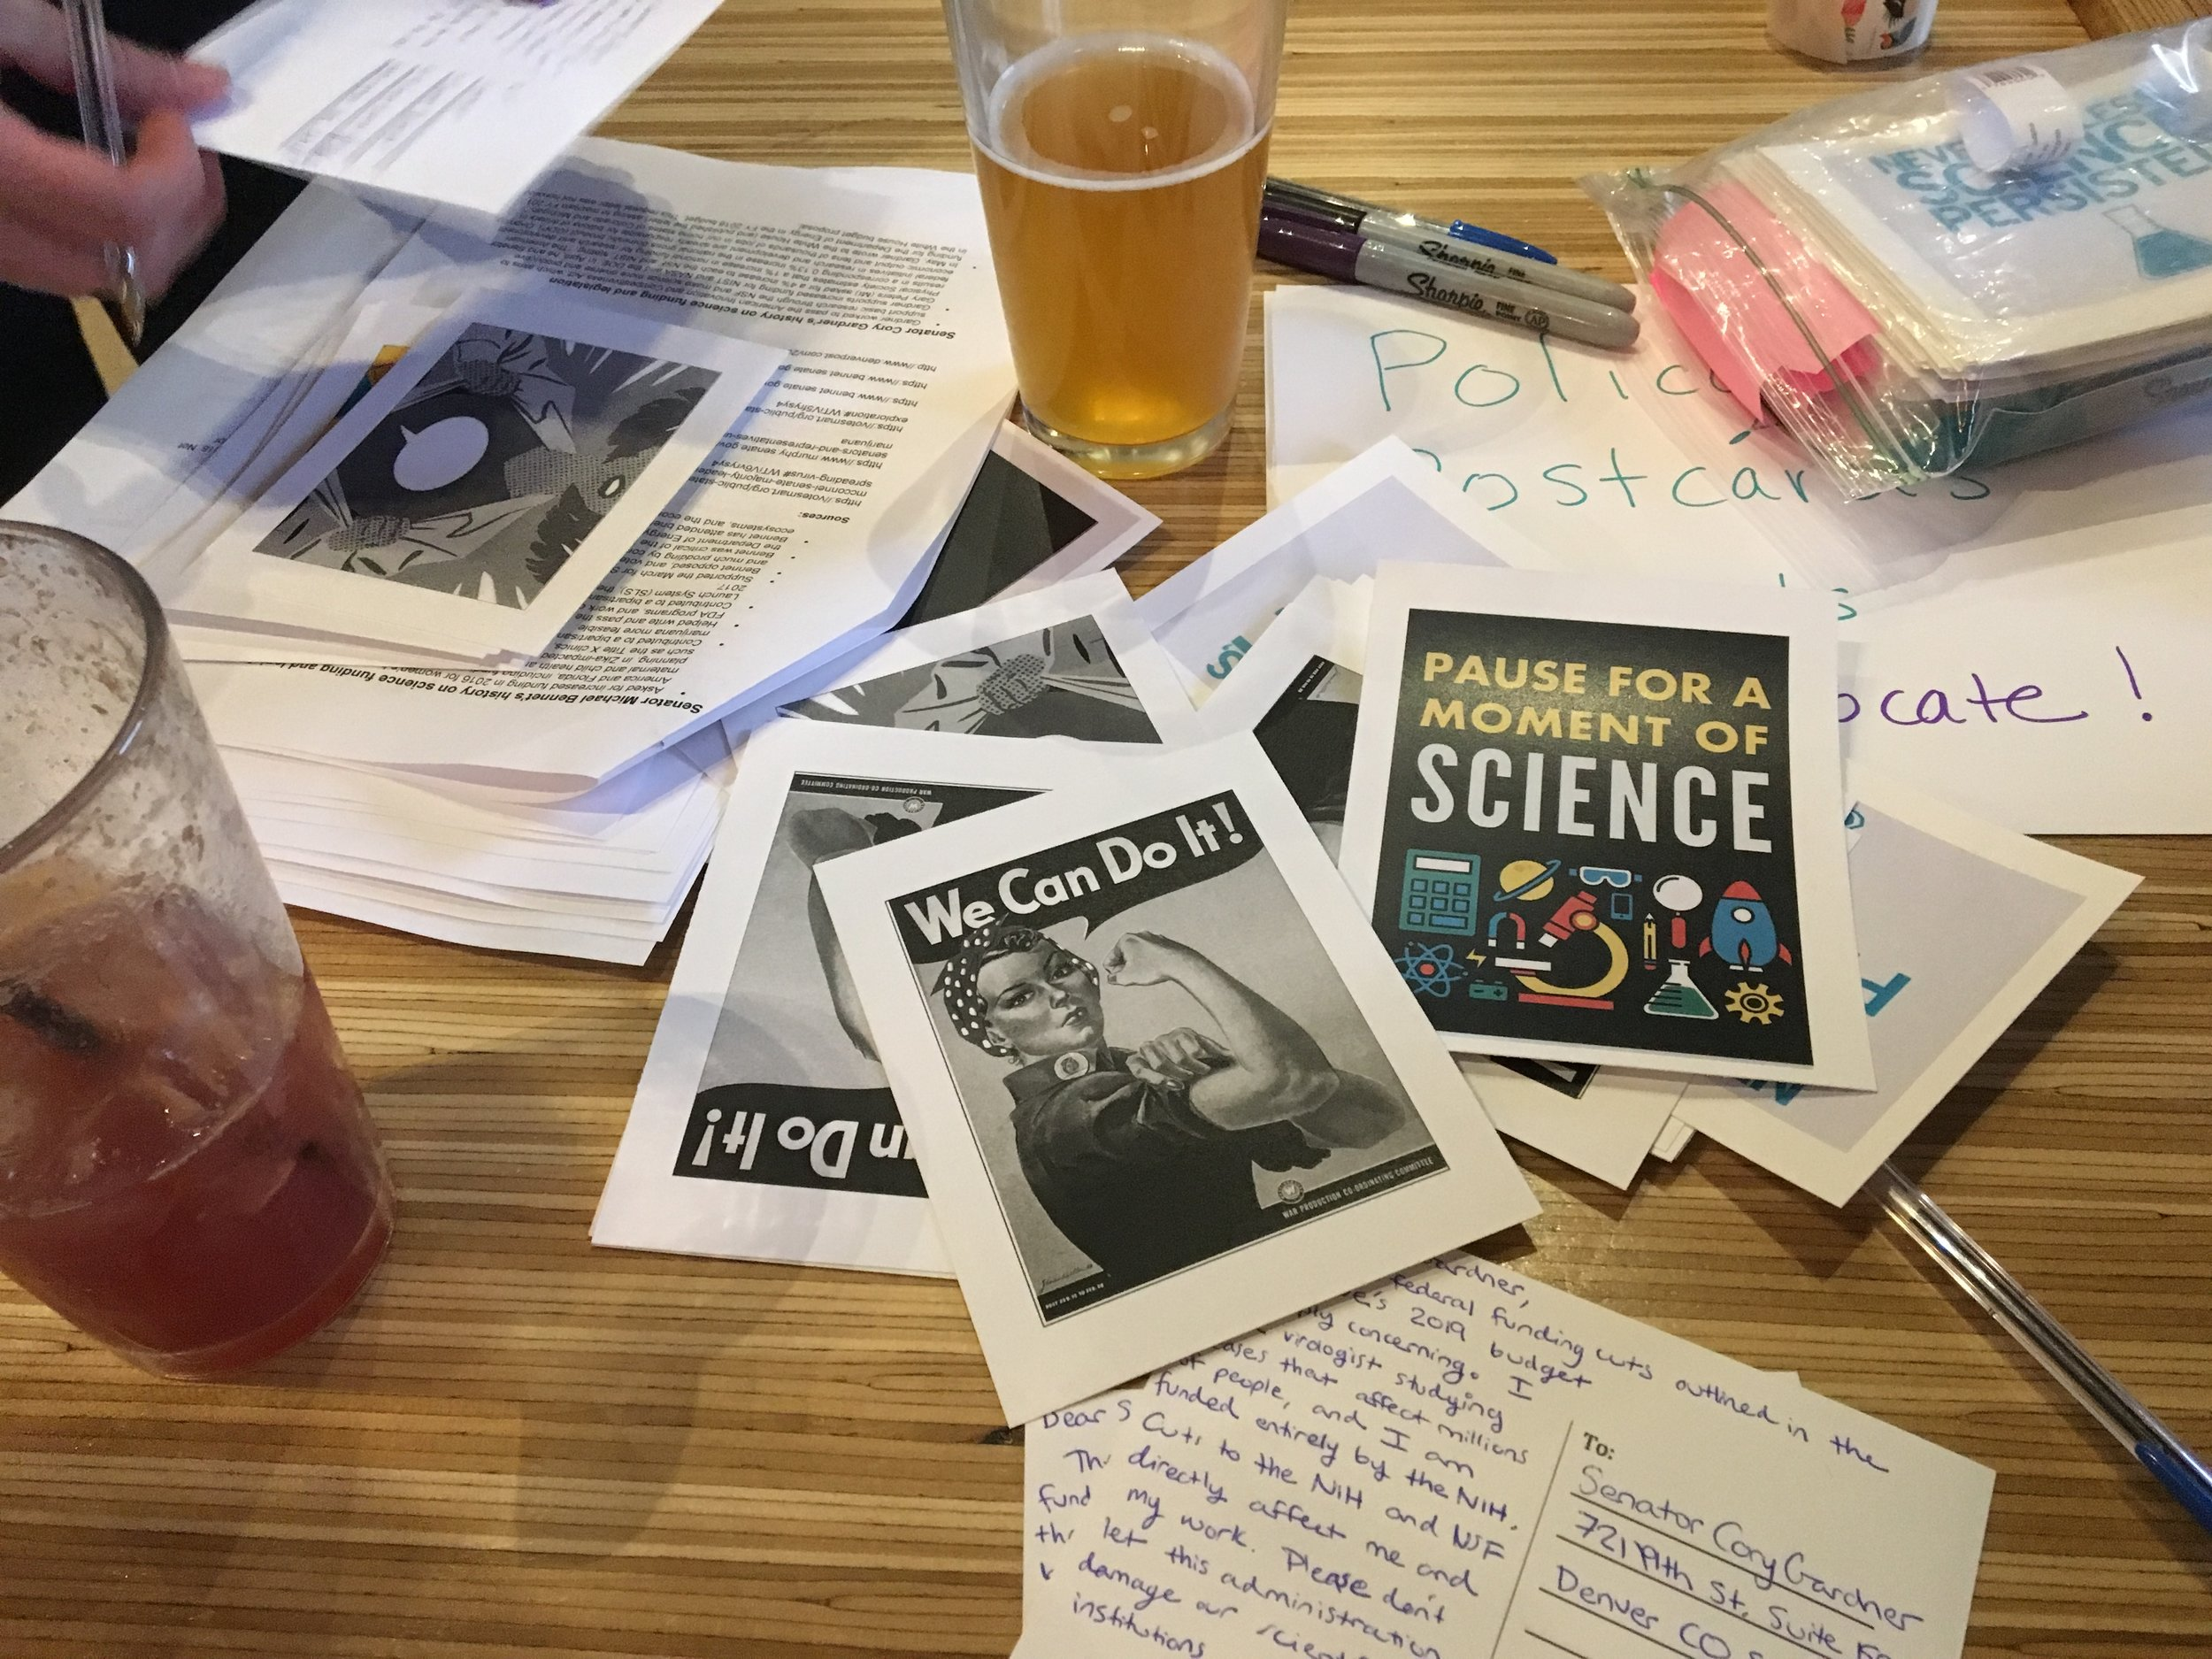 Policy, postcards and pints - How CU Boulder graduate students are advocating for science.